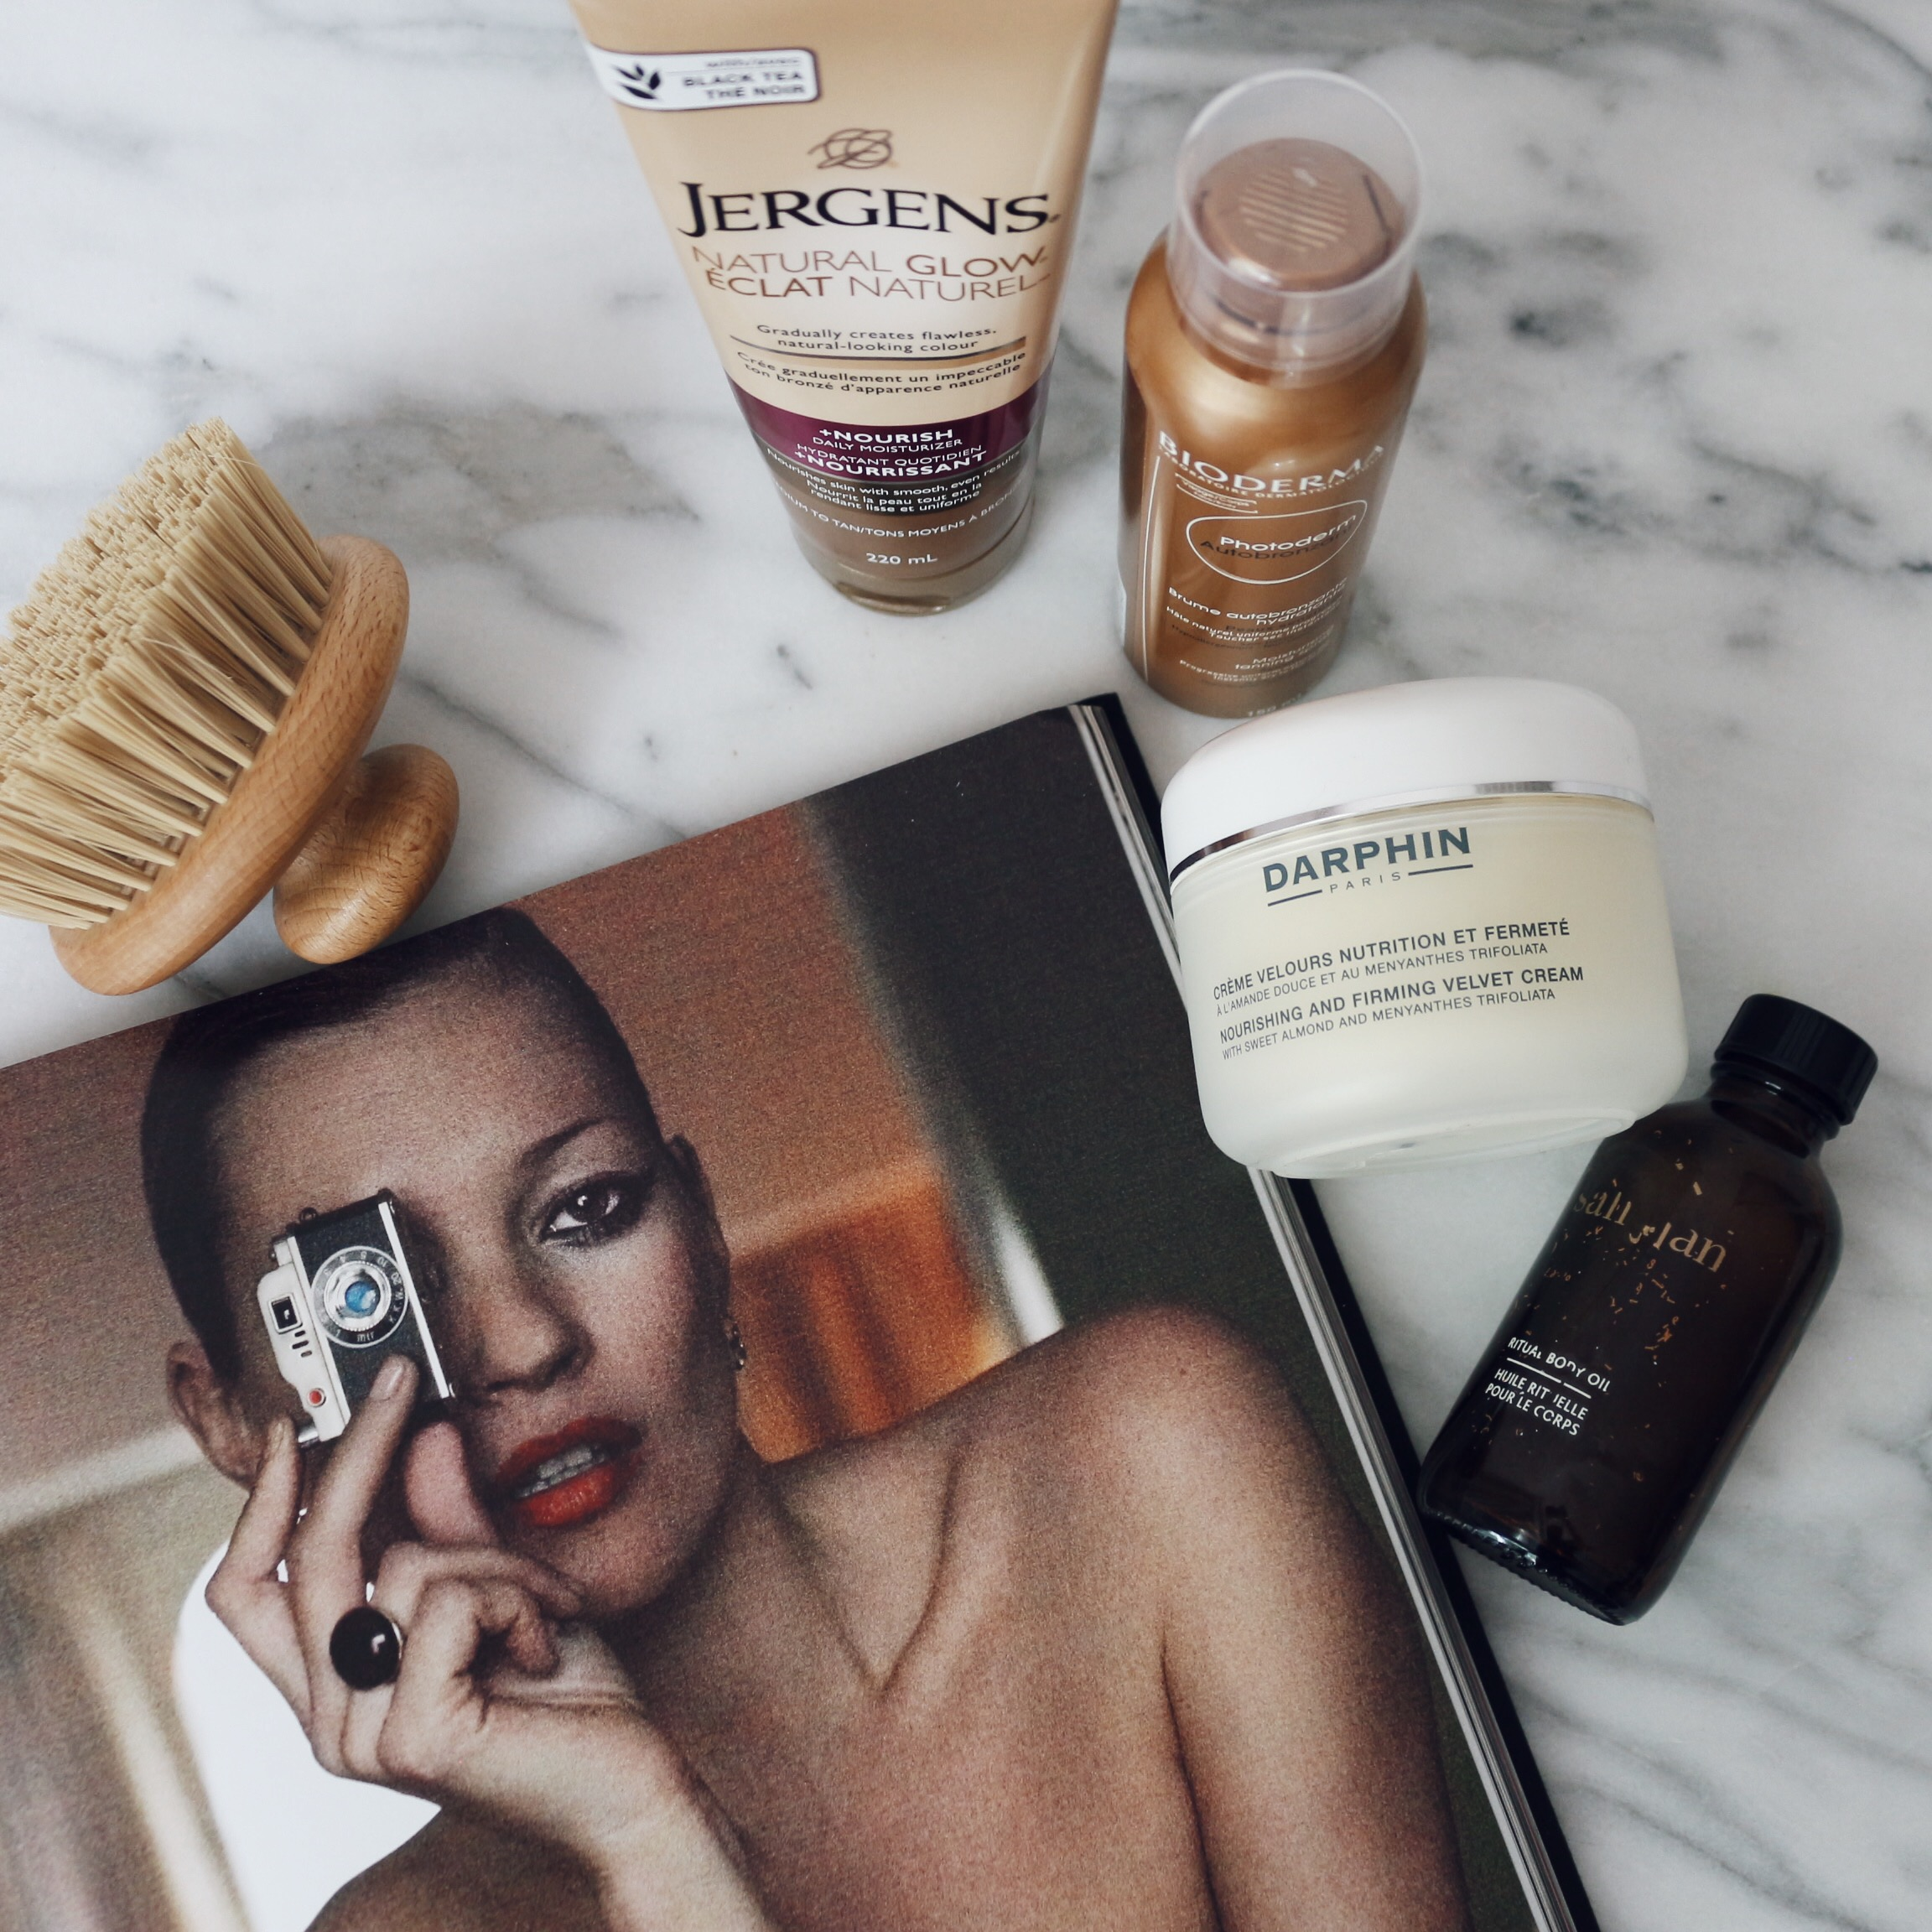 WOAHSTYLE.COM-How To Fake the Perfect Tan-Faux Tanning Week_7659.JPG